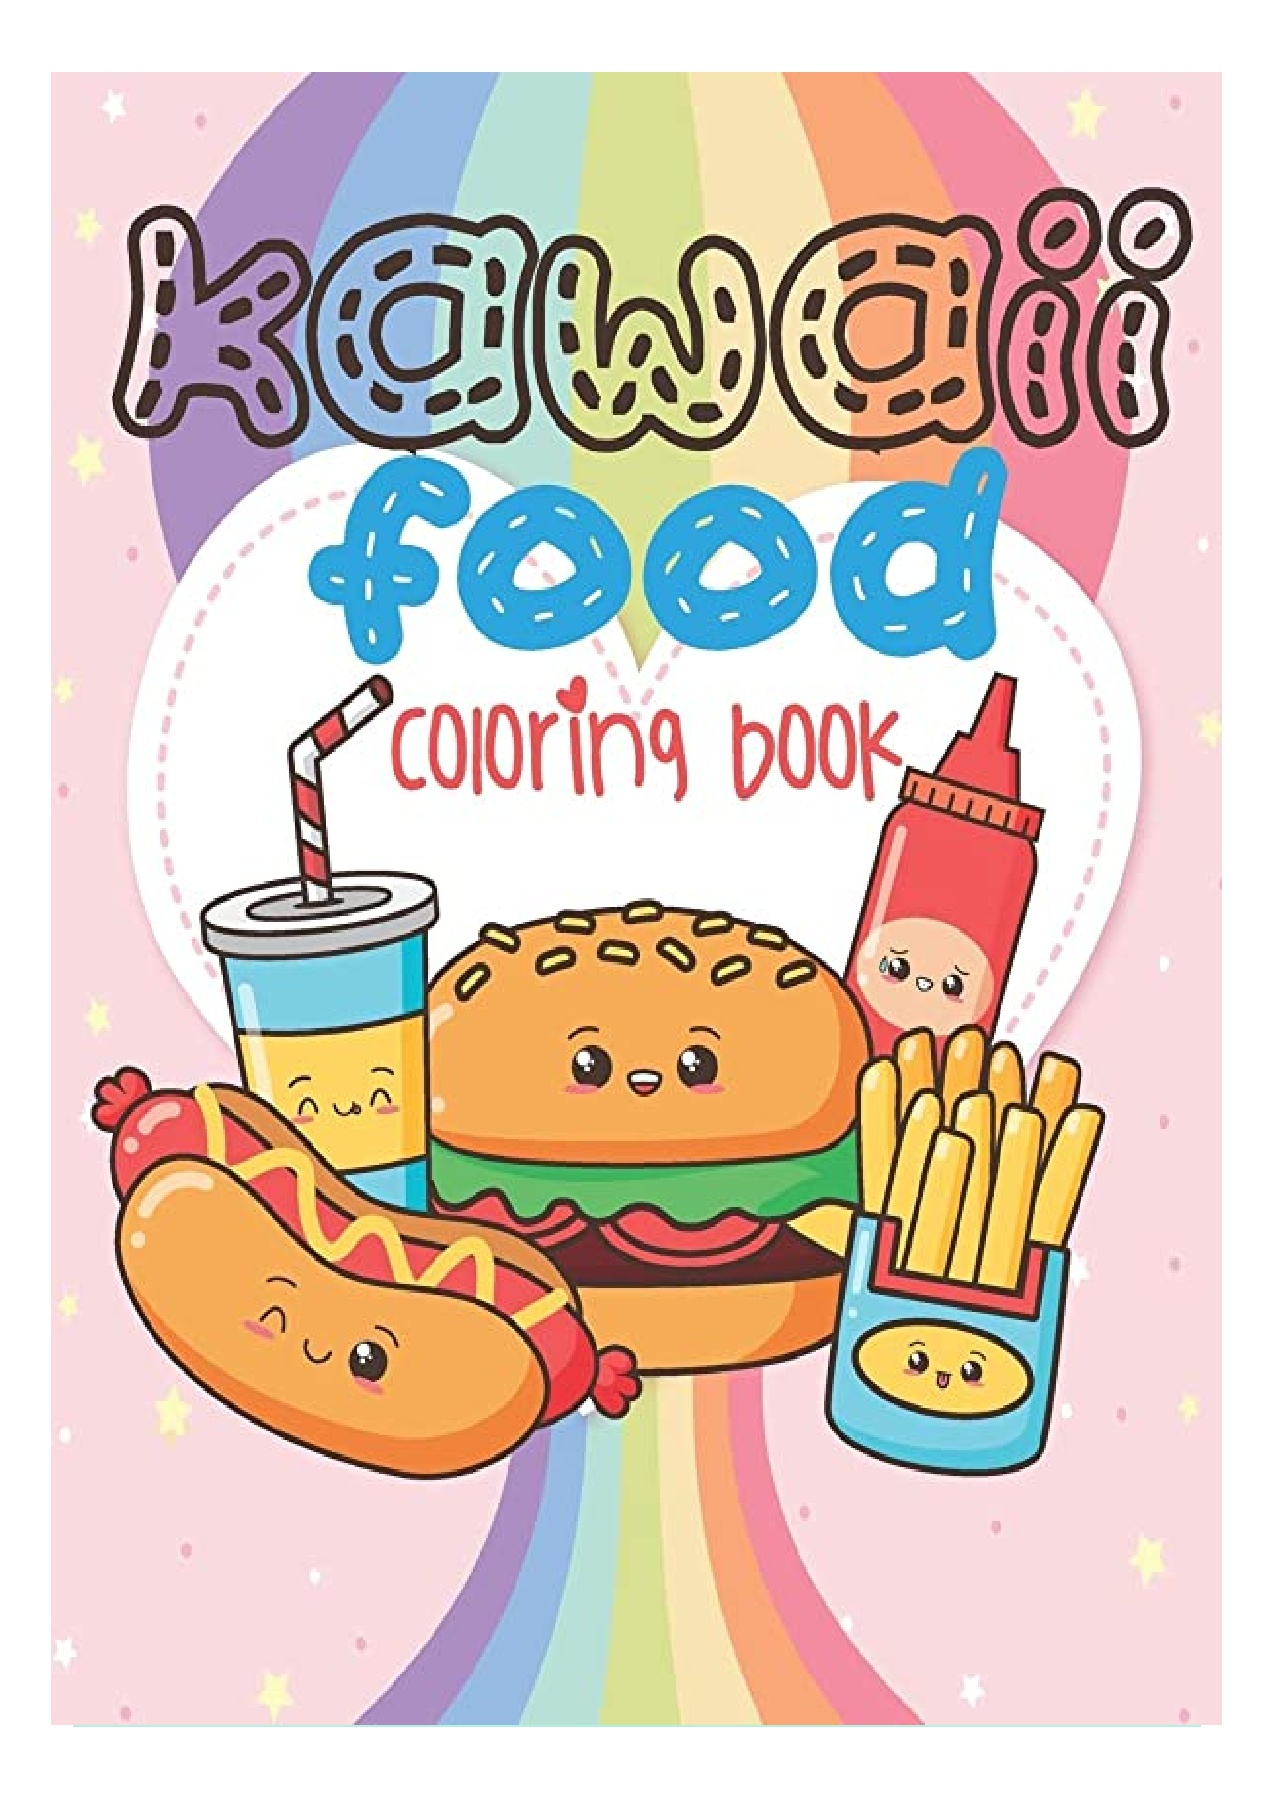 Pdf Free Download Kawaii Food Coloring Book Super Cute Food Coloring Book For Adults And Kids Of All Ages 30 Adorable Relaxing Easy Kawaii Food And Drinks Coloring Pages Ipad Flip Ebook